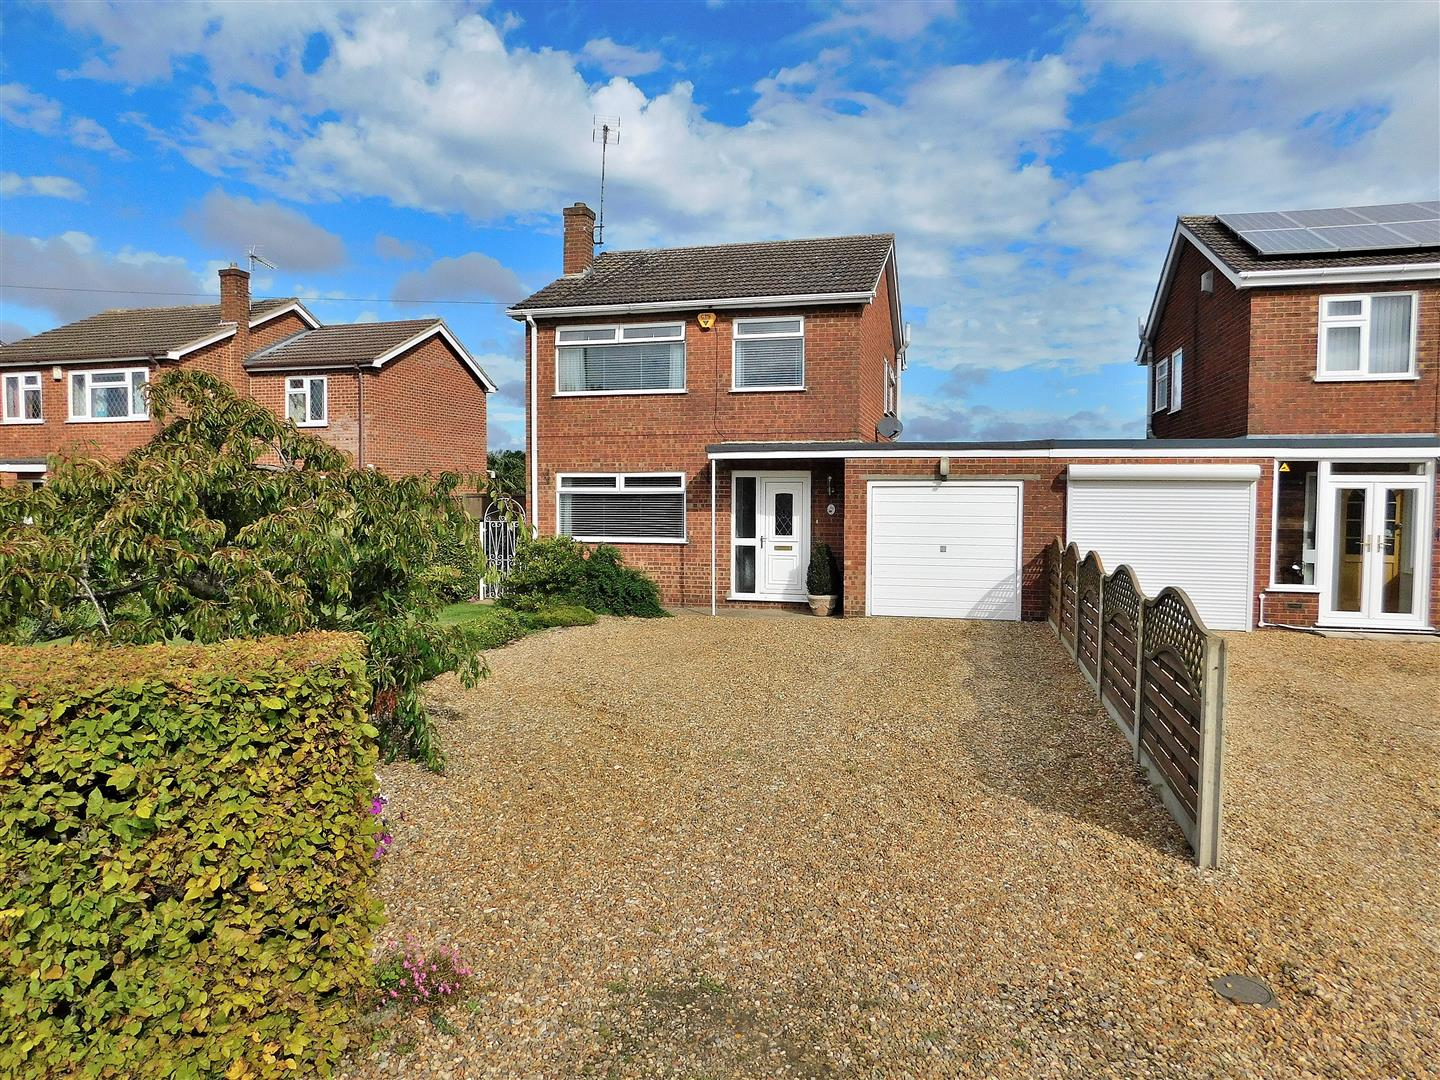 3 bed link detached house for sale in Northgate Way, King's Lynn - Property Image 1